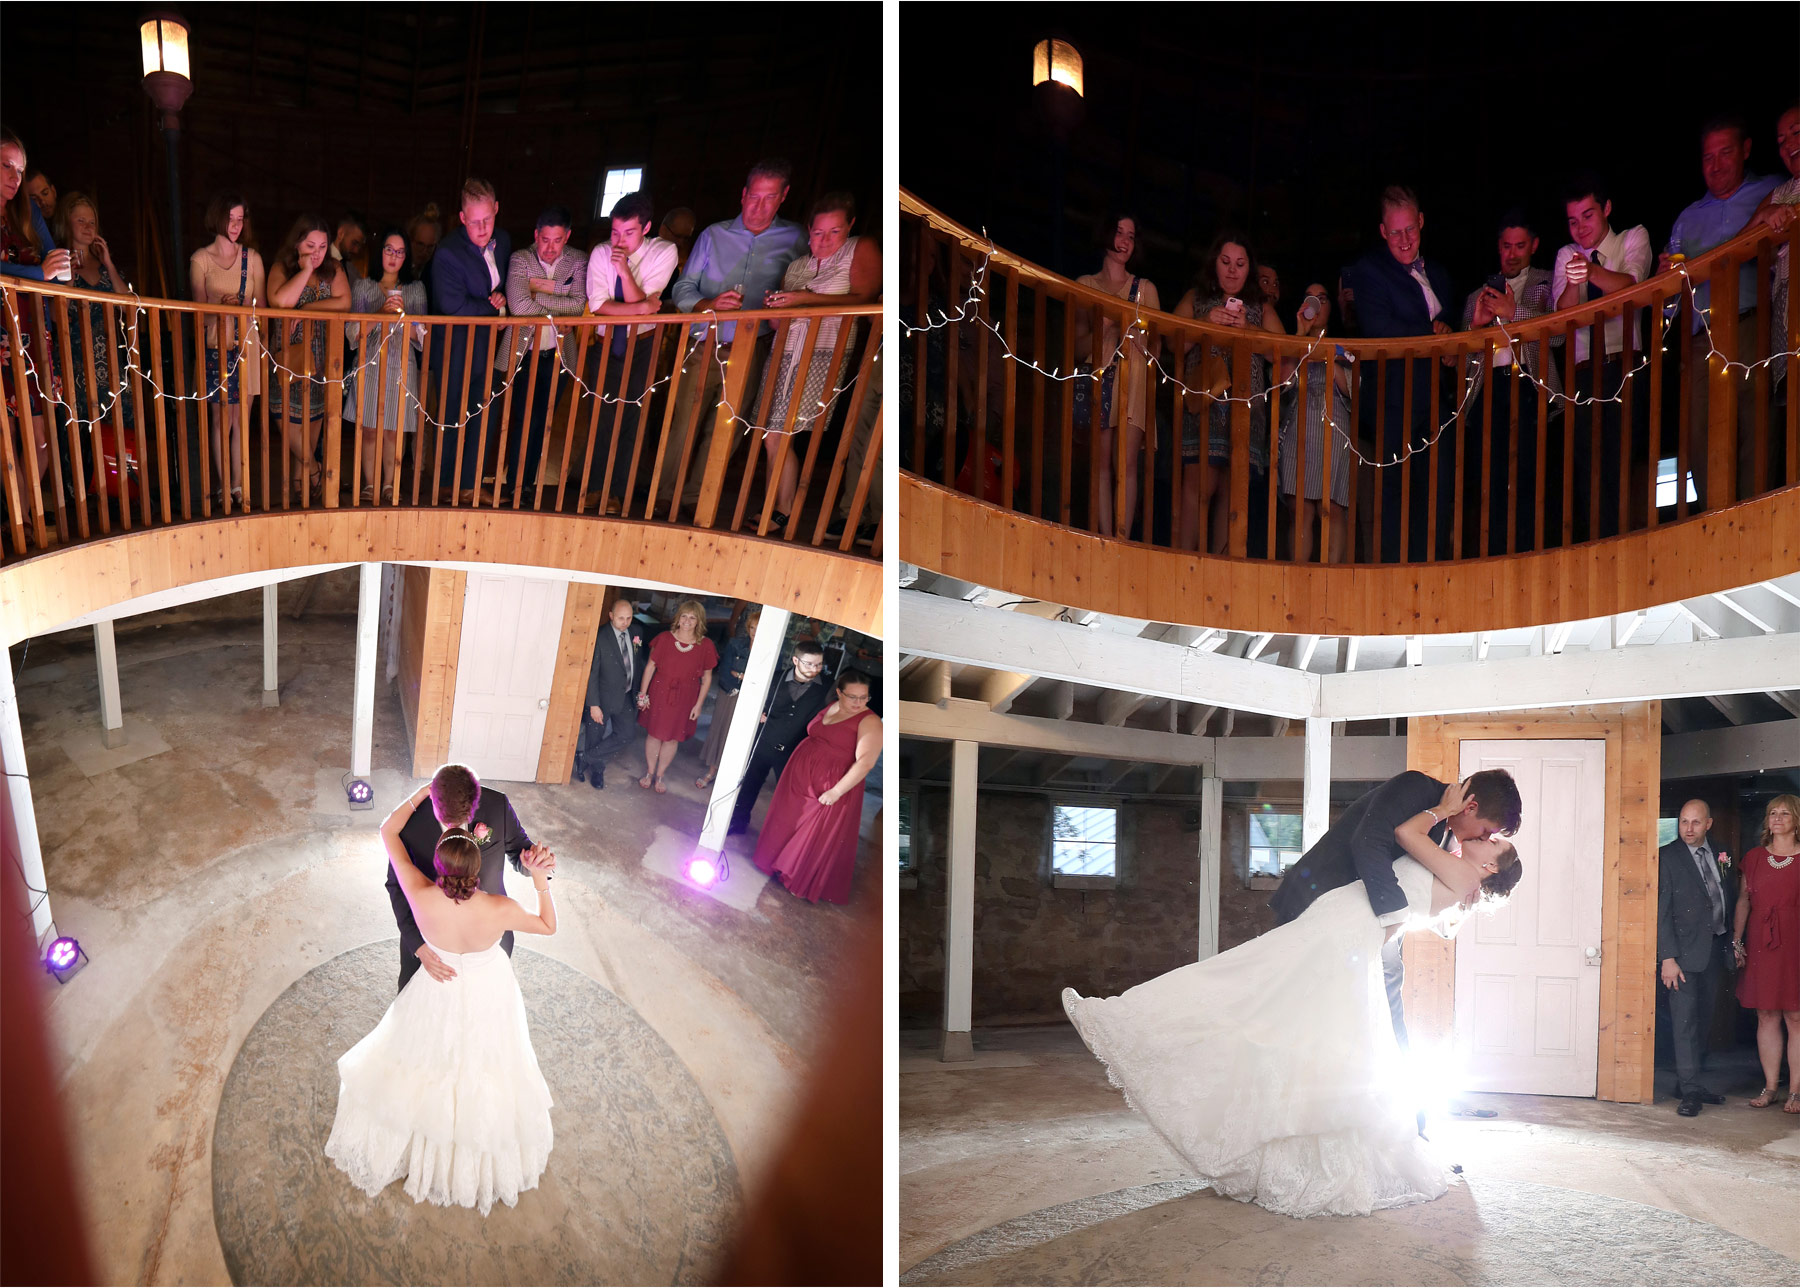 17-Red-Wing-Minnesota-Wedding-Photography-by-Vick-Photography-Round-Barn-Farm-First-Dance-Reception-Nikki-and-Will.jpg